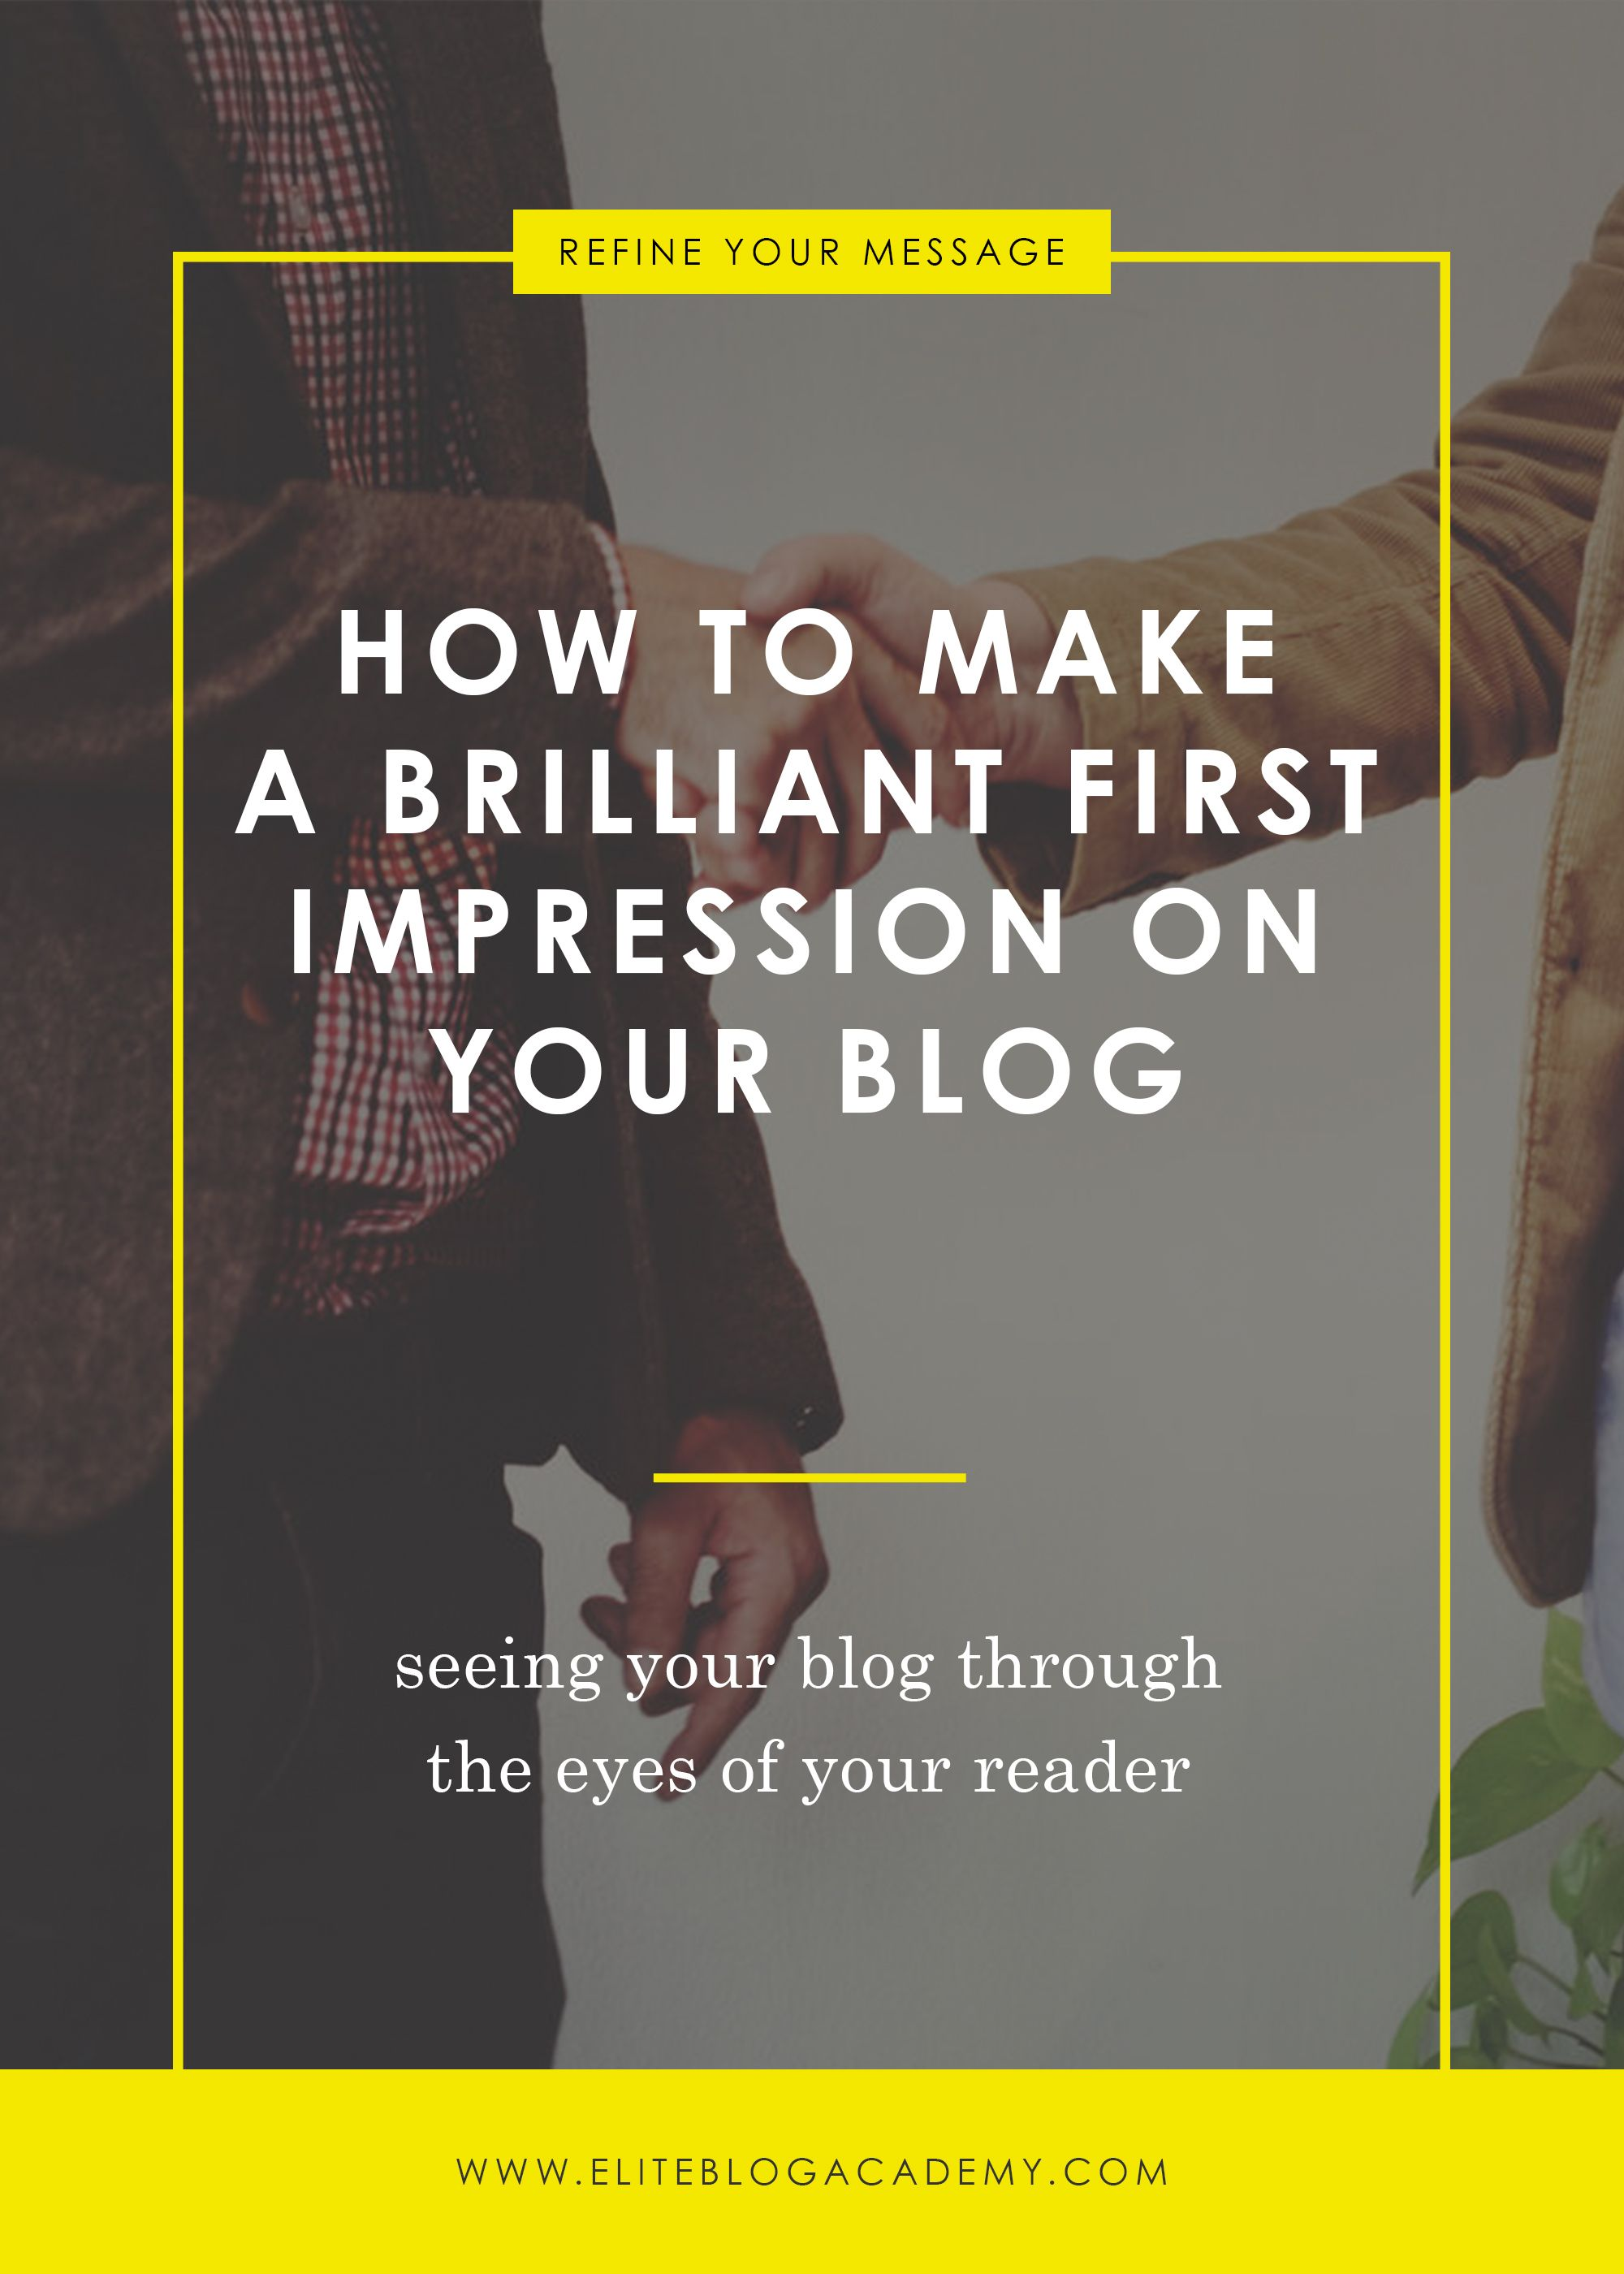 You only get one chance to make a first impression, and in the world of blogging, you've got to make it FAST! When someone visits your blog, you literally have only seconds to convince them they've landed in the right place and should keep reading. So how do you do that? By putting yourself in your readers' shoes! If you've been struggling to connect, don't miss these key blog organization strategies to help you make a brilliant first impression on your readers.